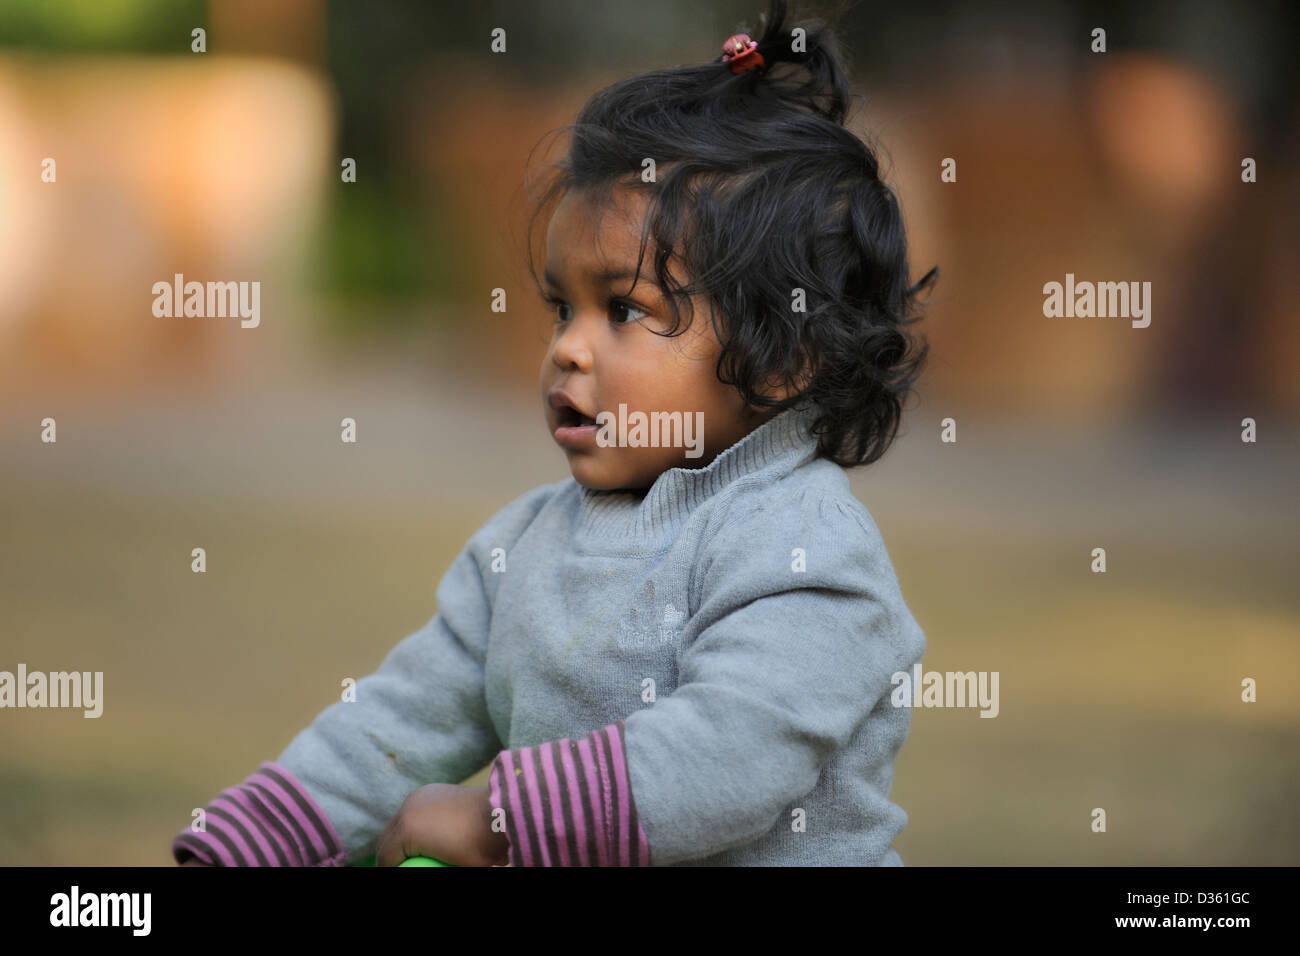 cute south asian indian baby stock photos & cute south asian indian